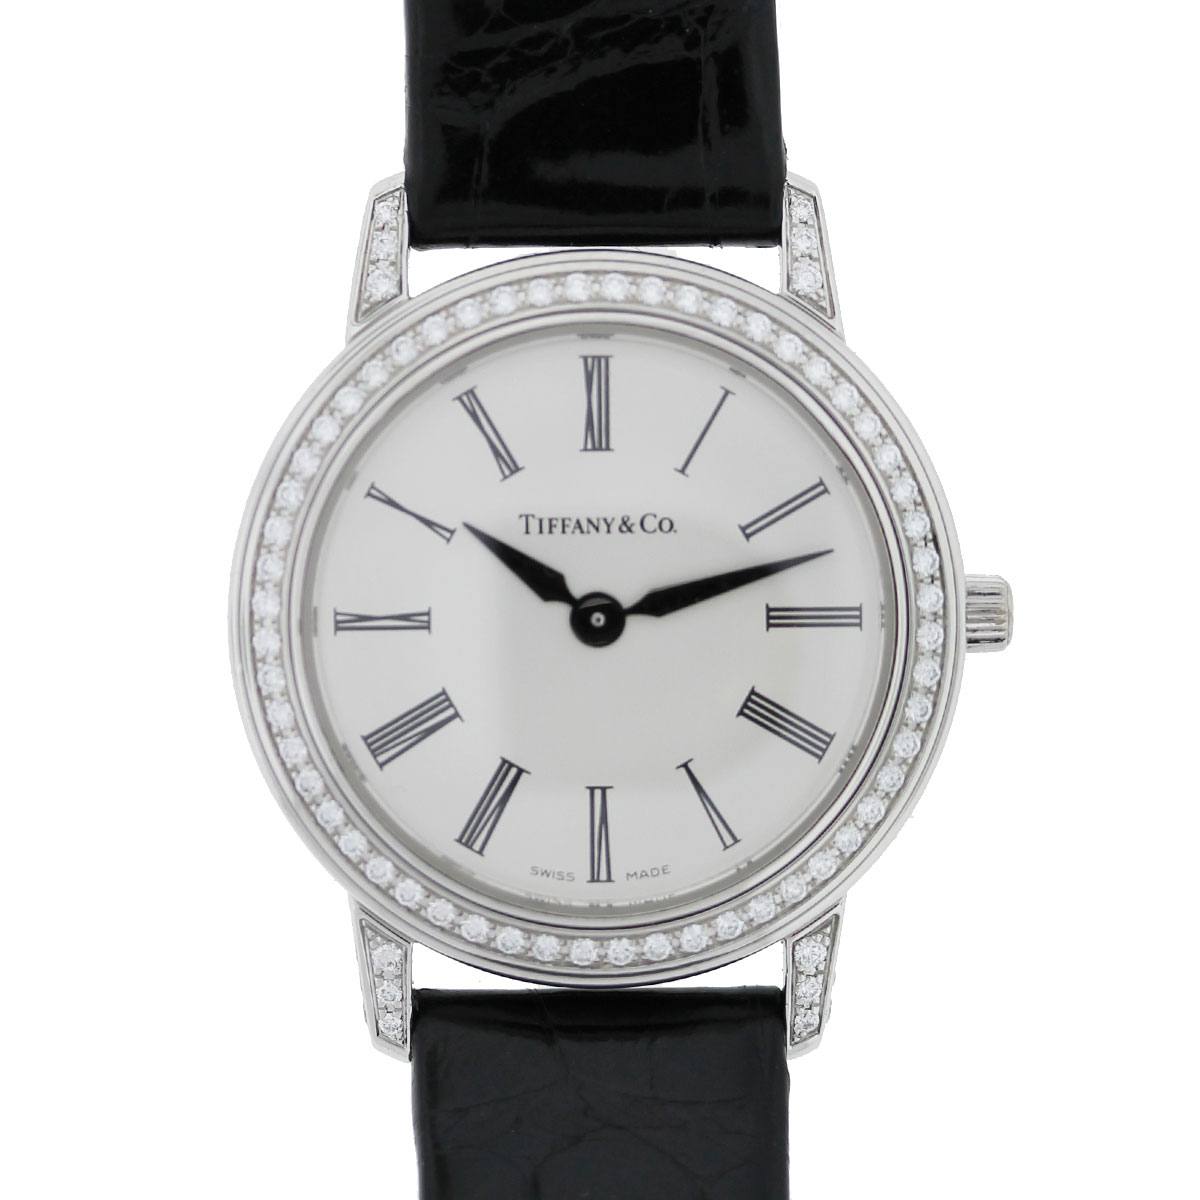 Tiffany & Co. Platinum & Diamond Silver Roman Dial Watch